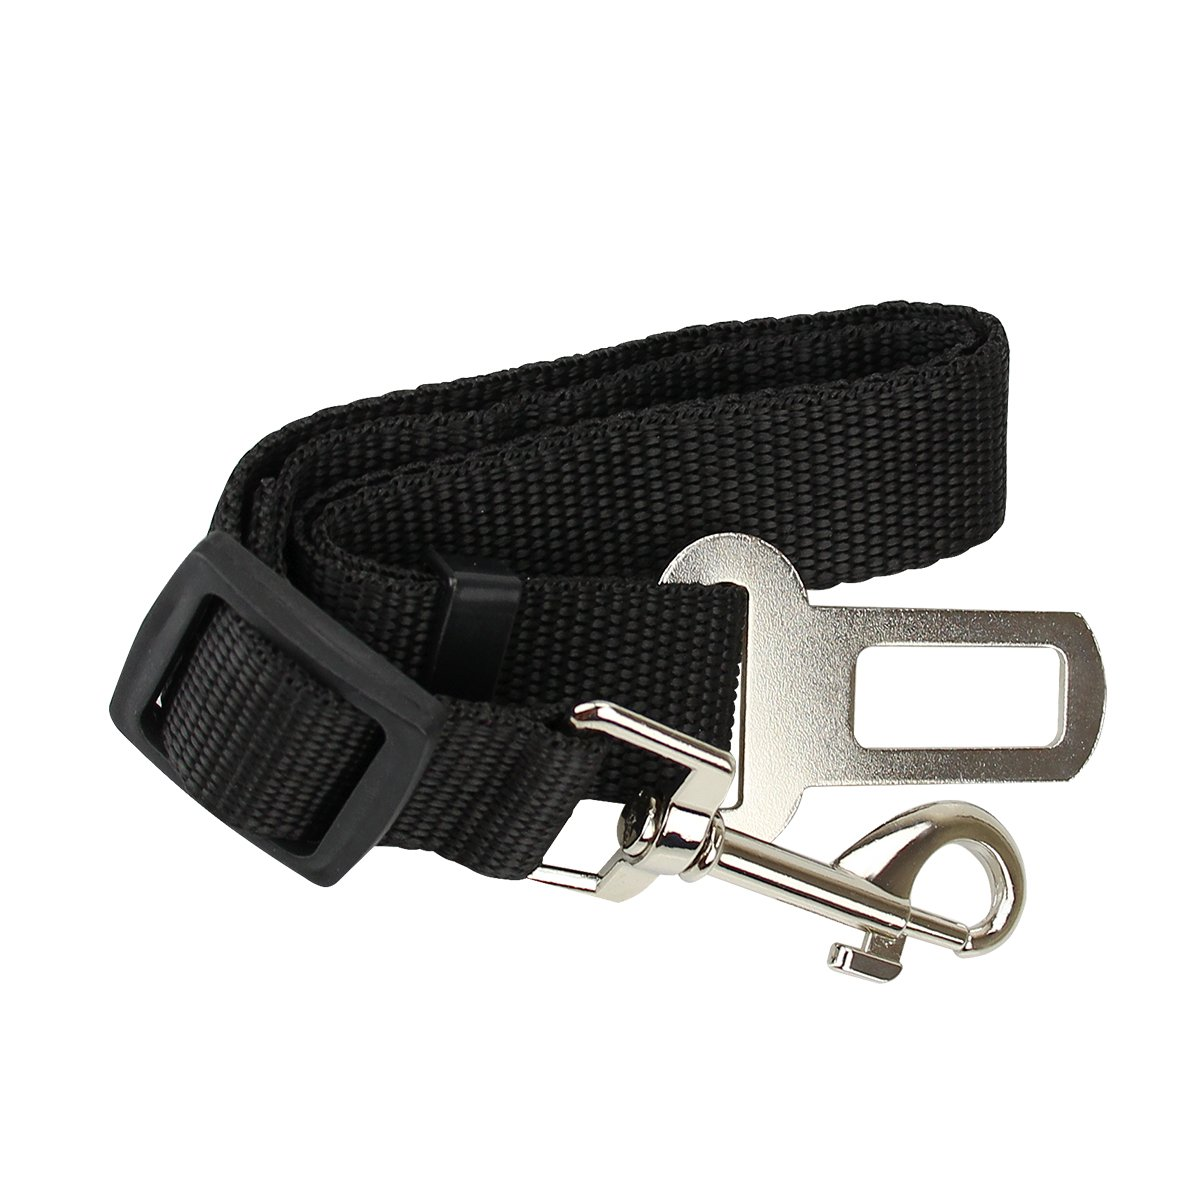 DierCosy Black Pet Dog Car Seat Belts Safety Harness Adjustable Buckle Travel Auto Vehicle Stabilizer Protector Guard Nylon Fabric with Metal Clips